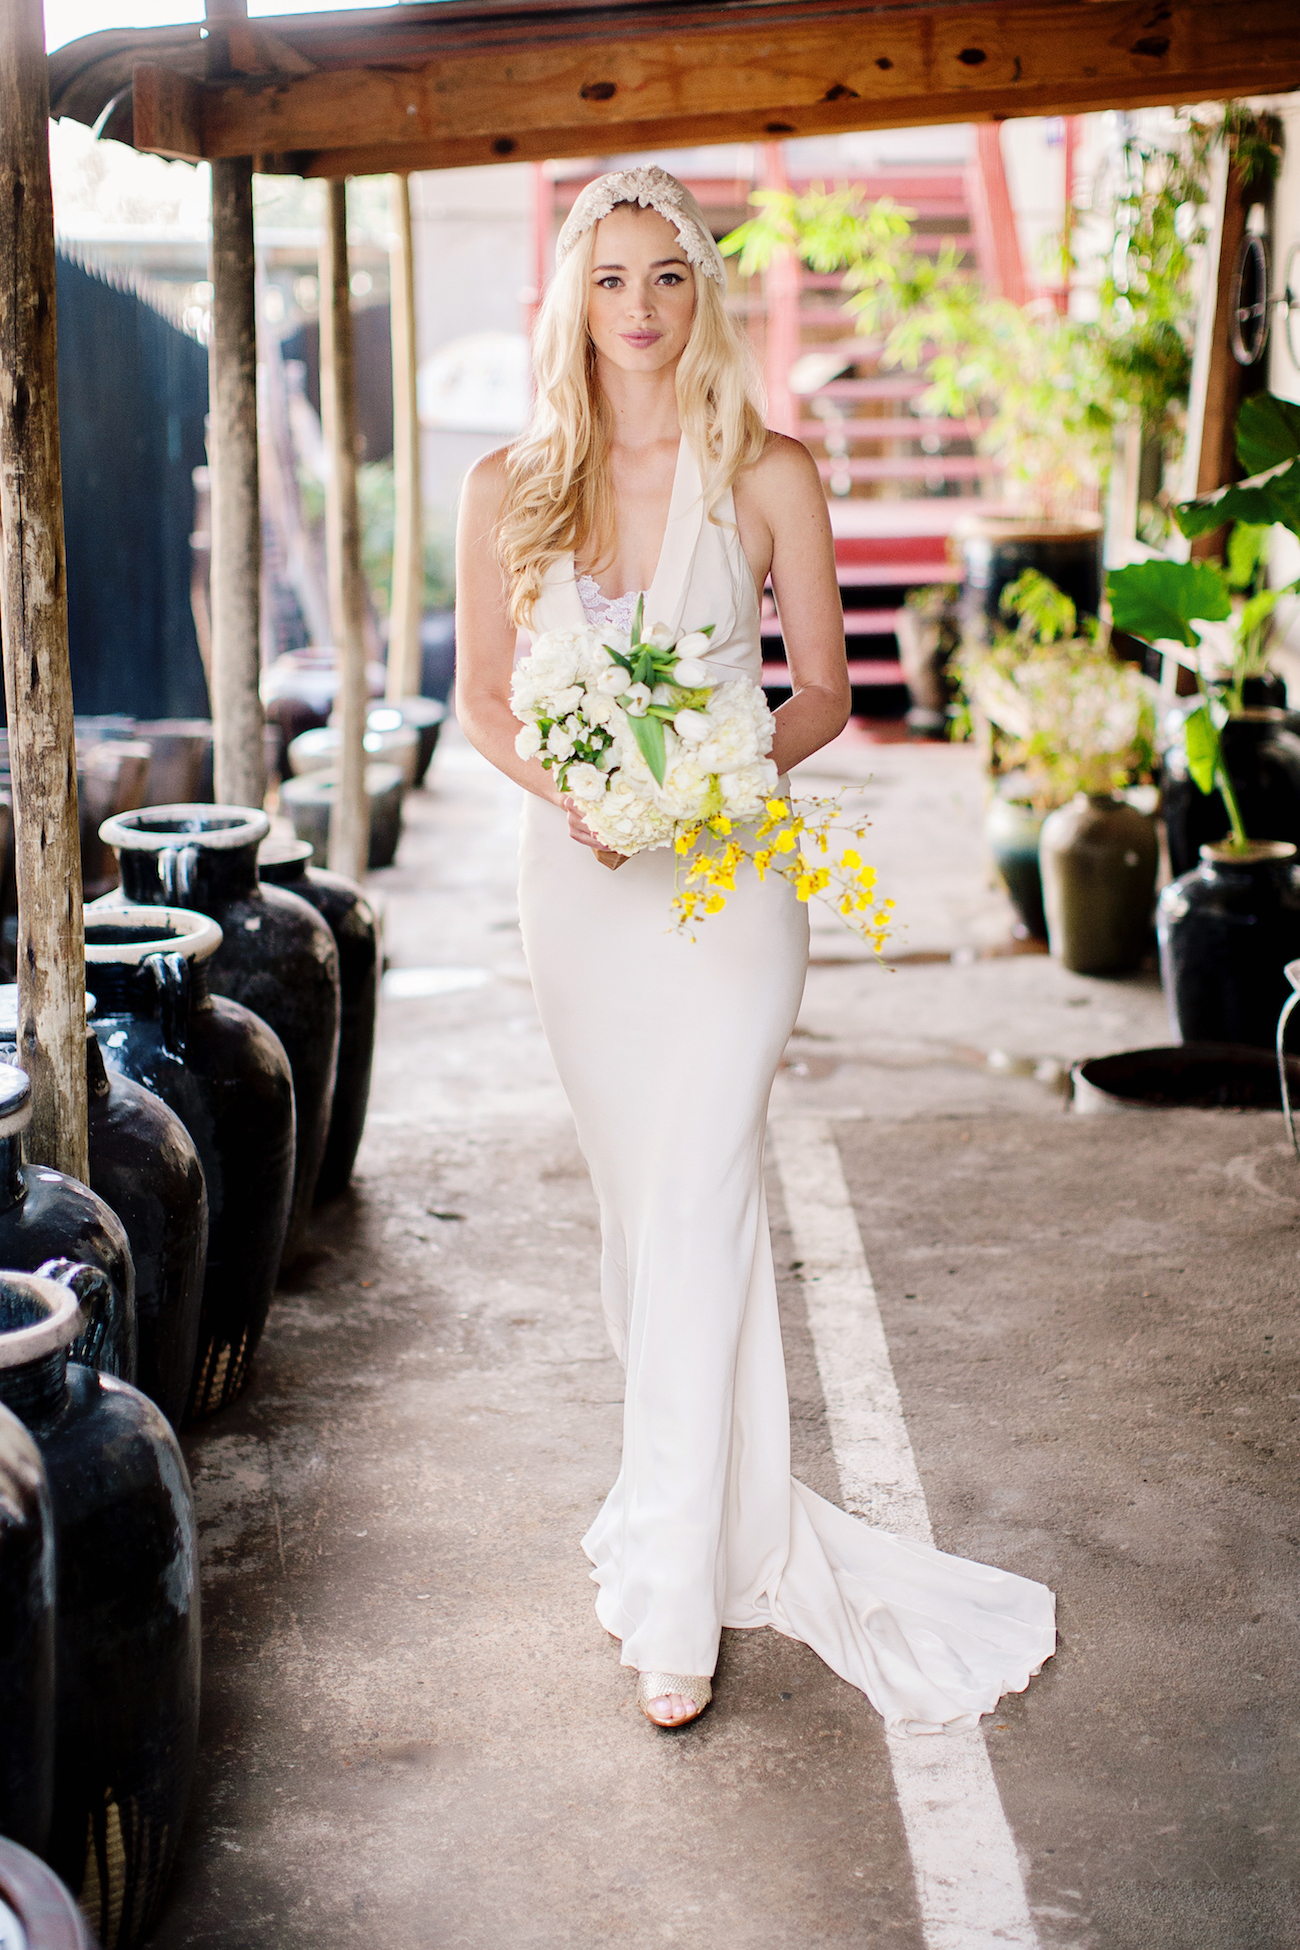 Boho Wedding Dress | Credit: Wedding Concepts & Tyme Photography